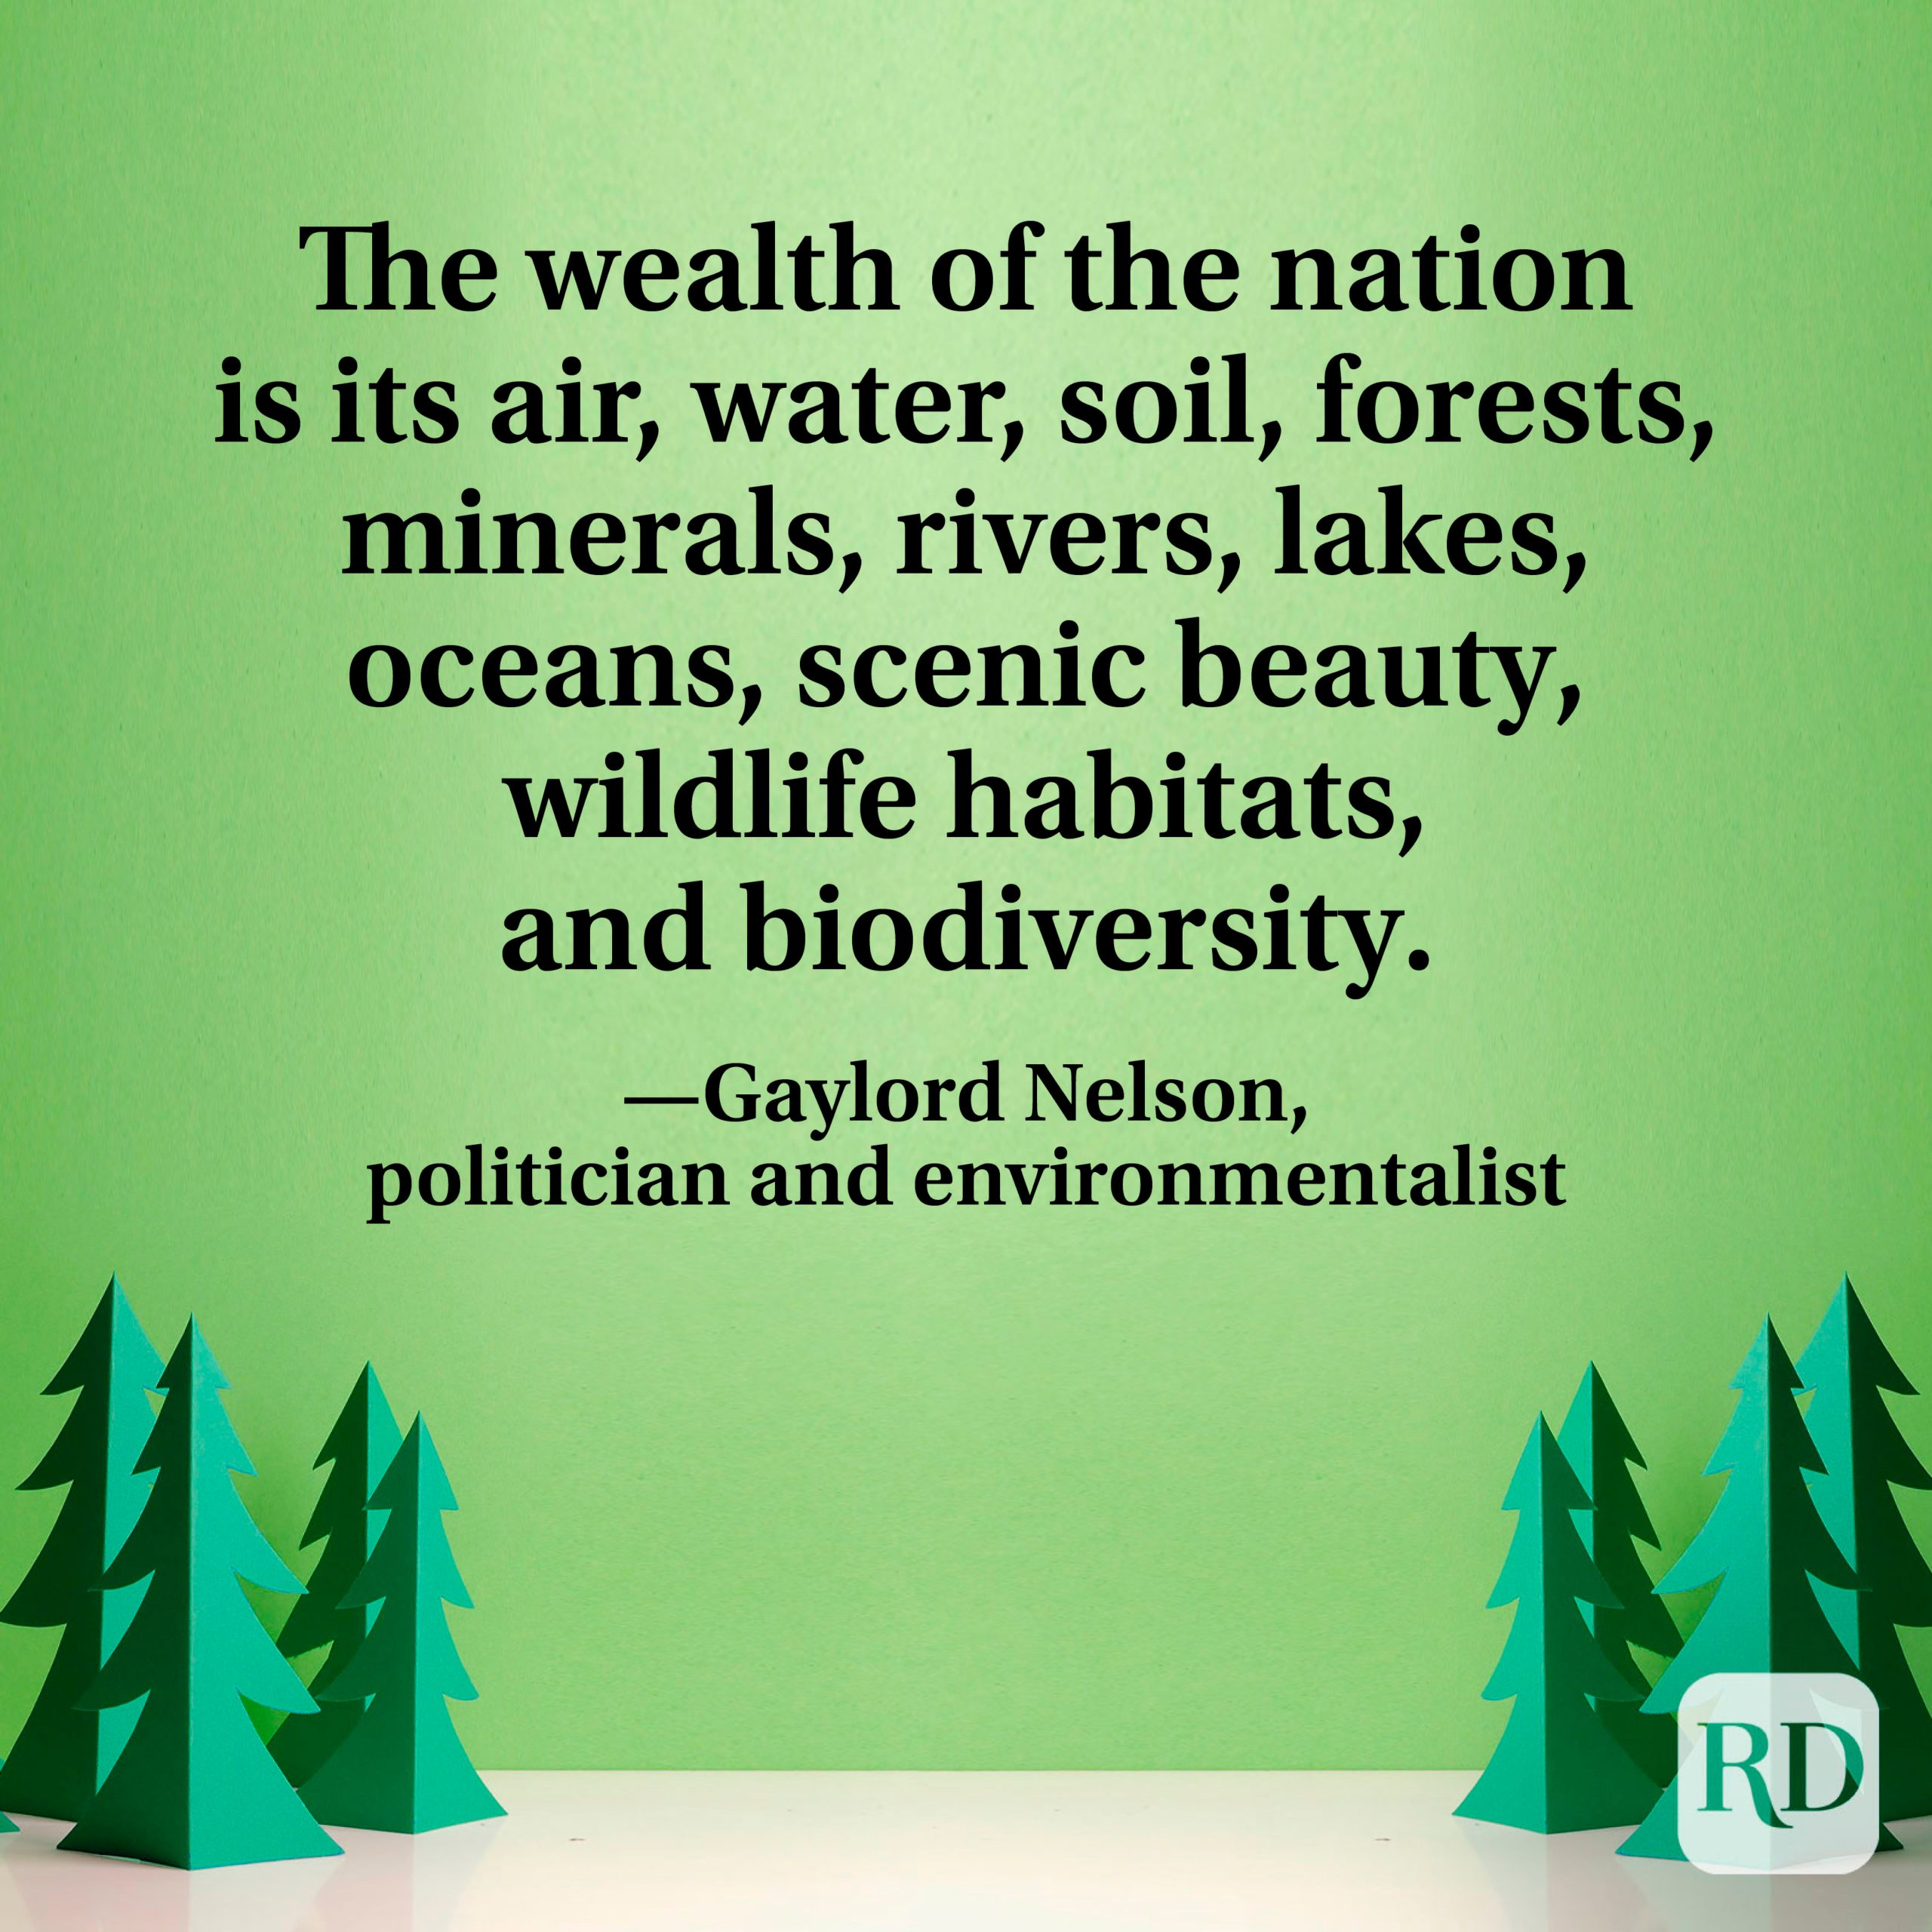 """""""The wealth of the nation is its air, water, soil, forests, minerals, rivers, lakes, oceans, scenic beauty, wildlife habitats, and biodiversity."""" —Gaylord Nelson, politician and environmentalist"""